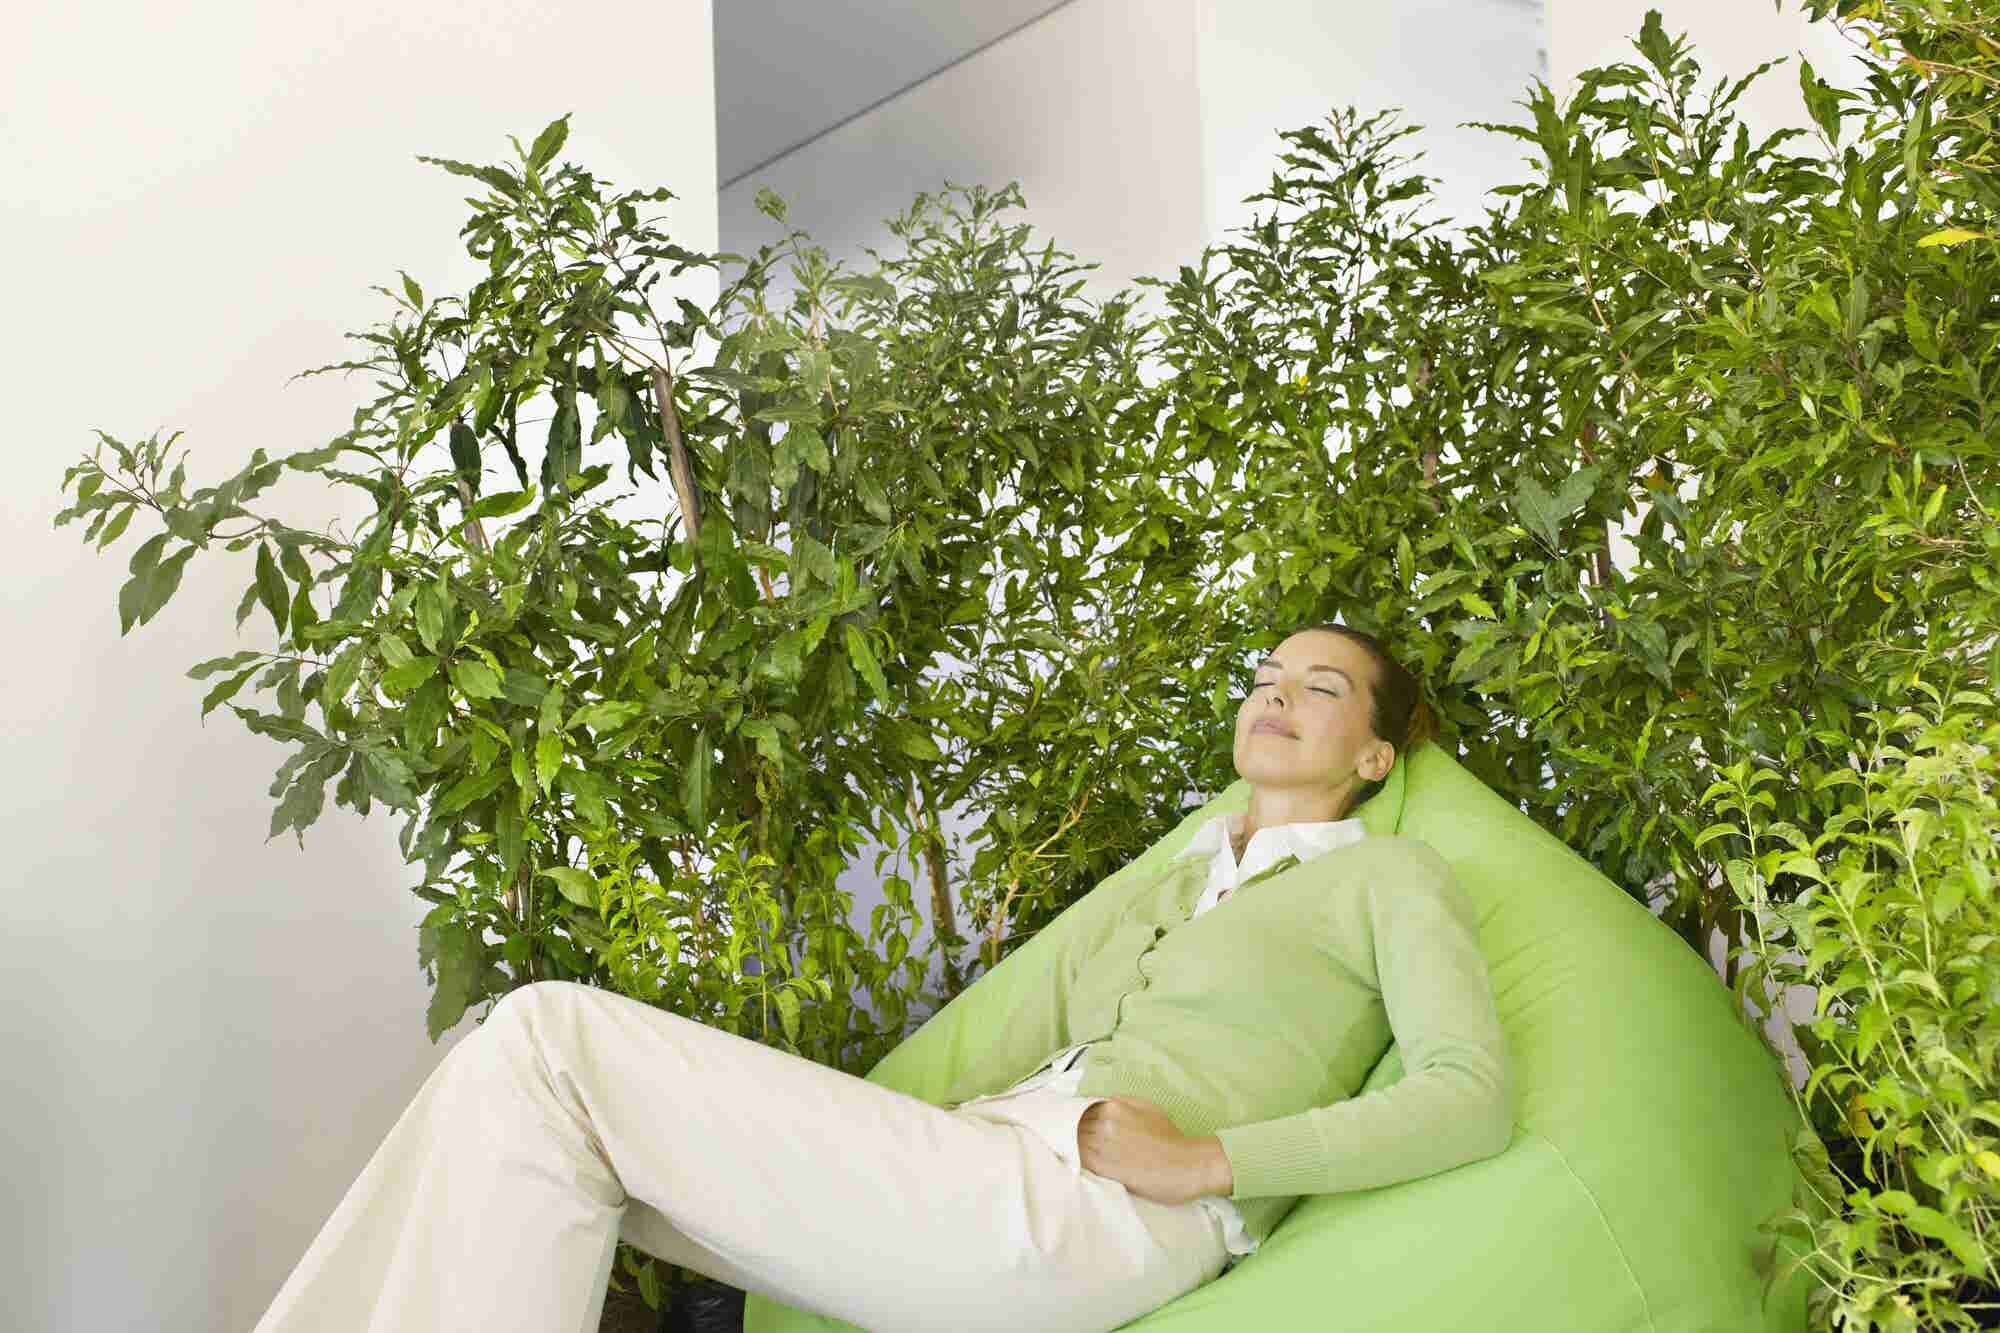 You Can Nap on the Job at These 10 Companies